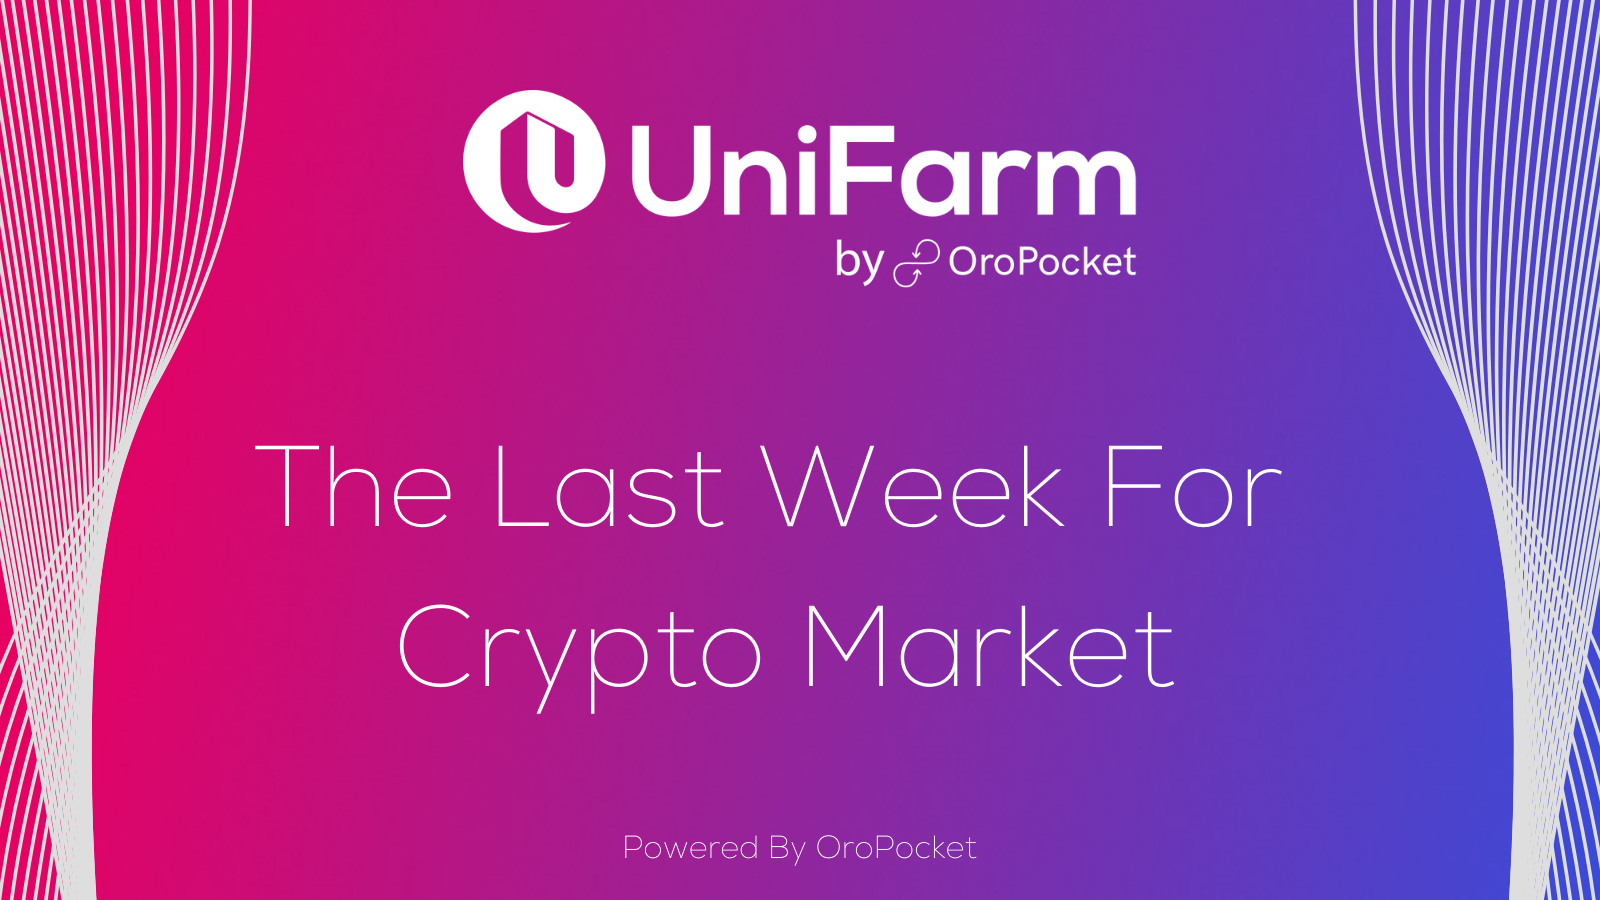 How Was The Last Week For The Crypto Market